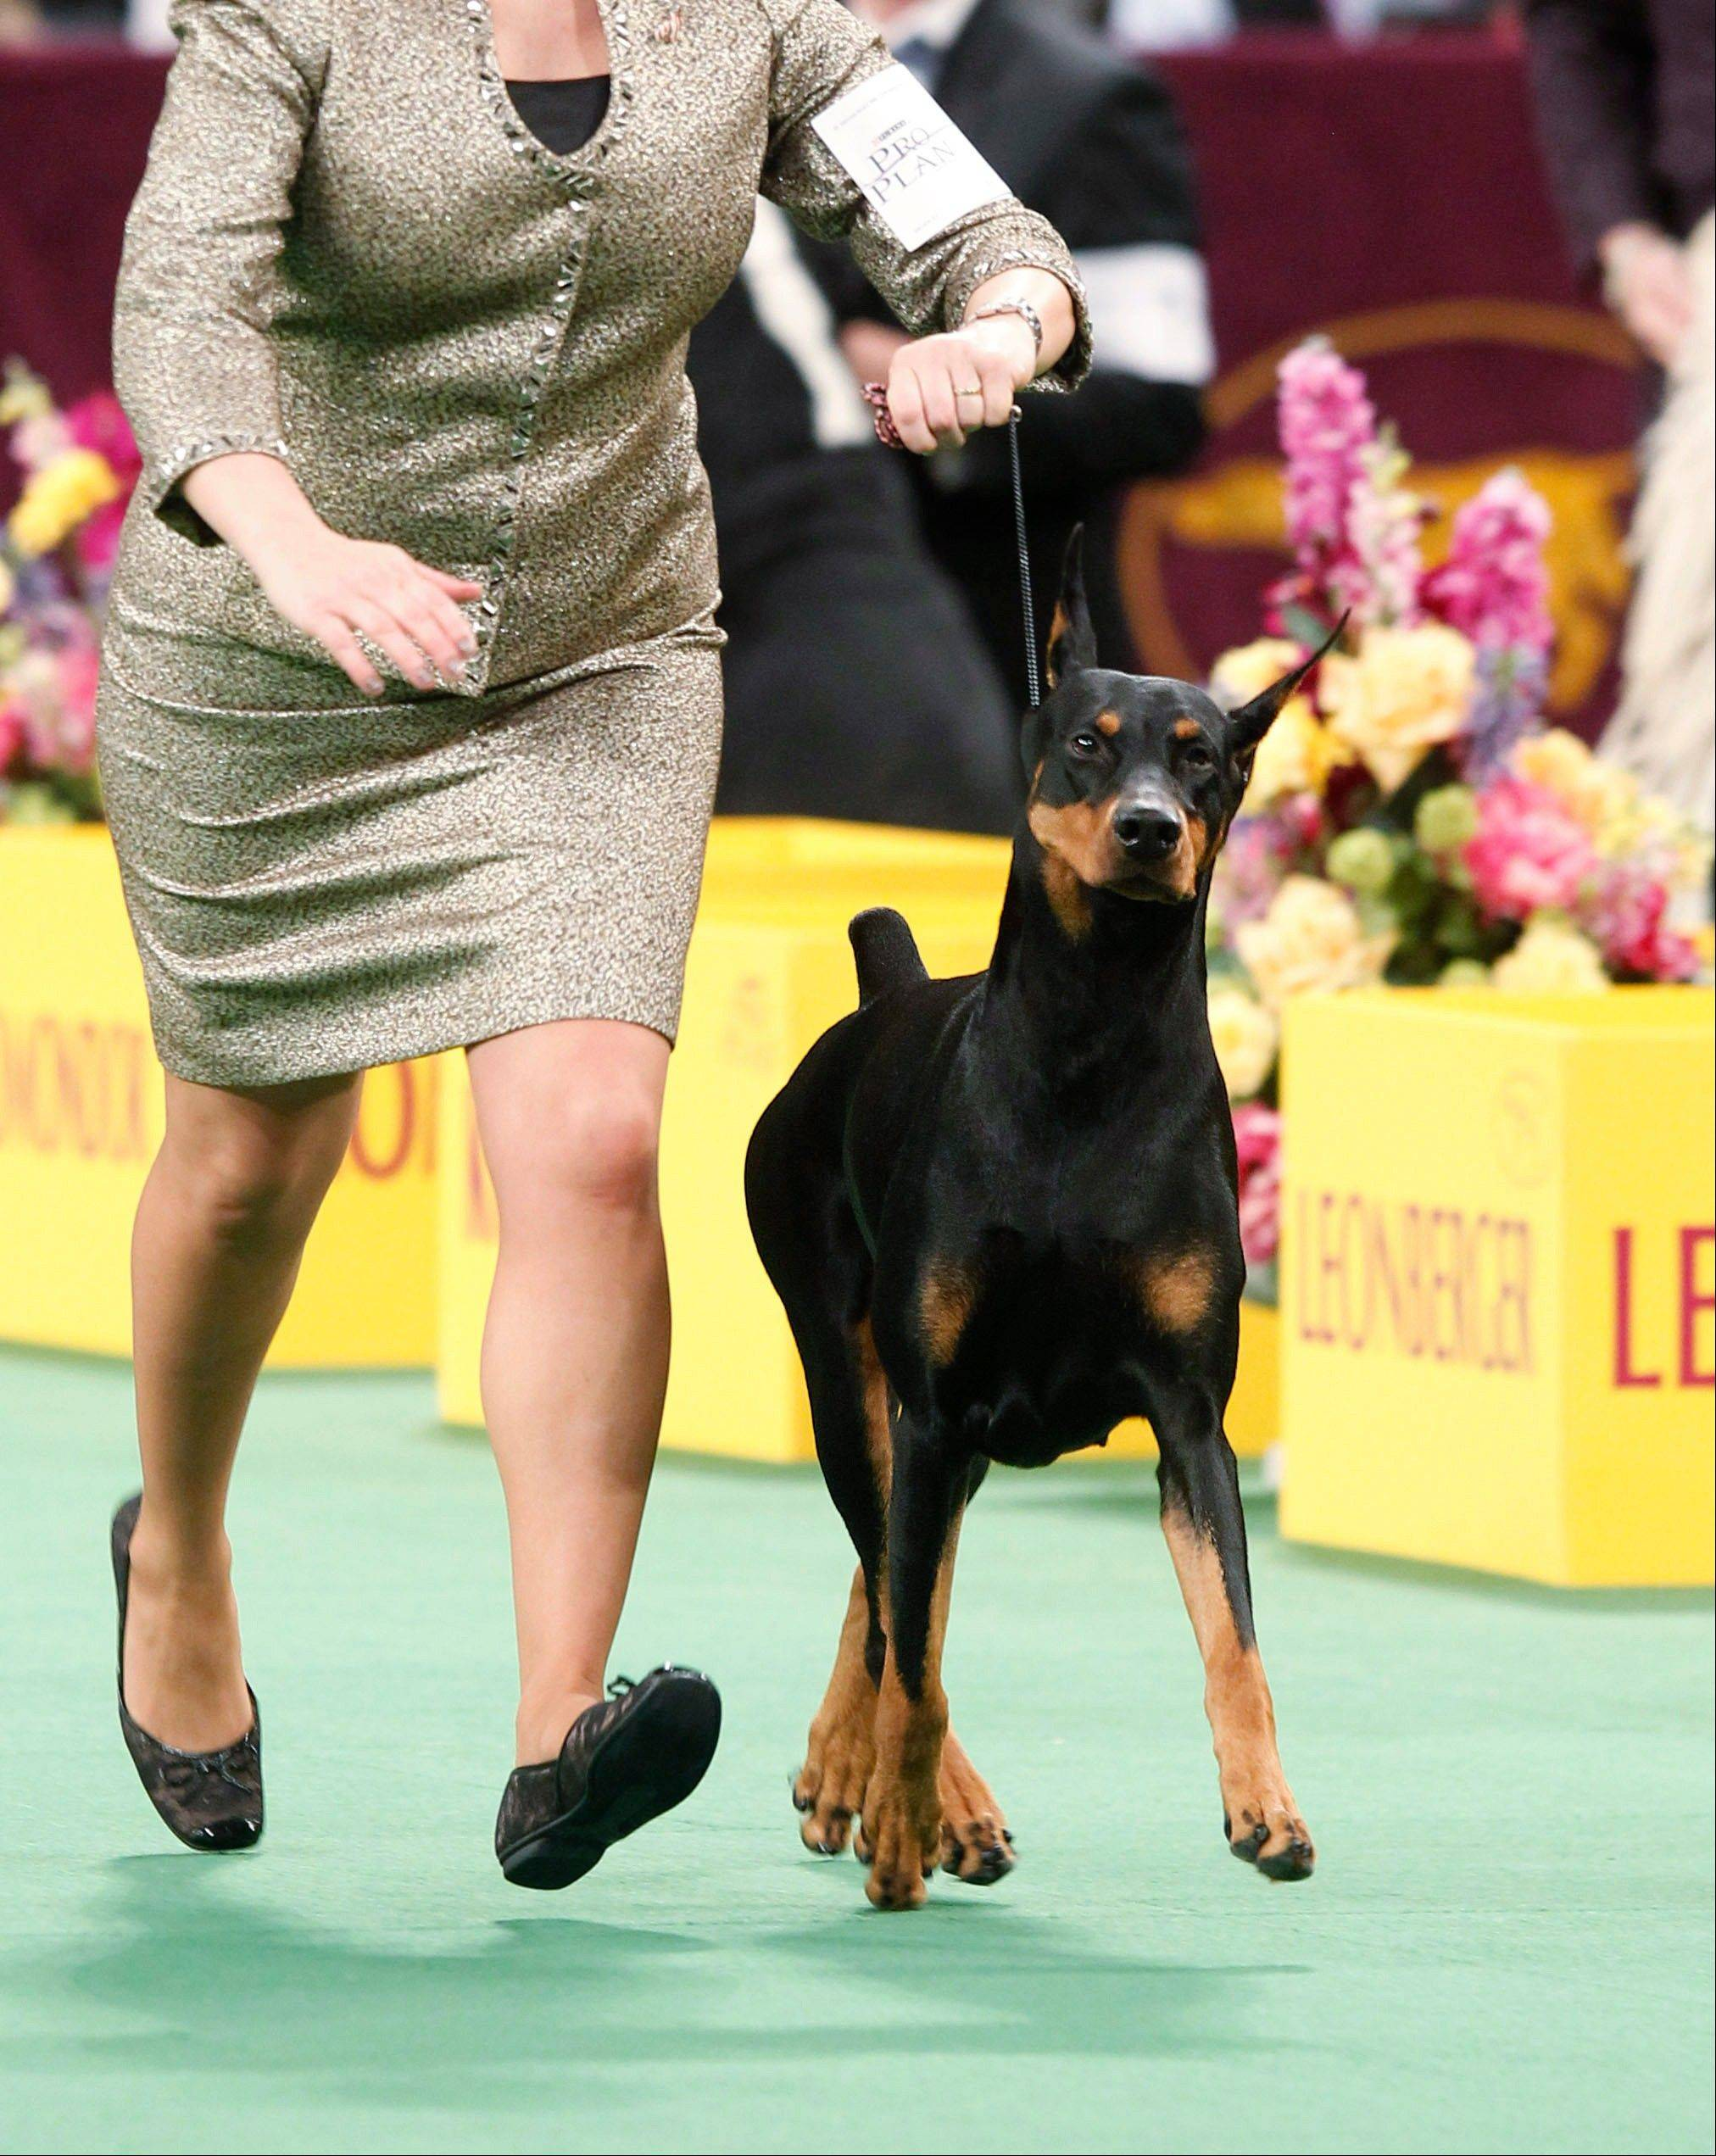 Veni Vidi Vici, a Doberman pinscher, competes in the working group, which she later won.